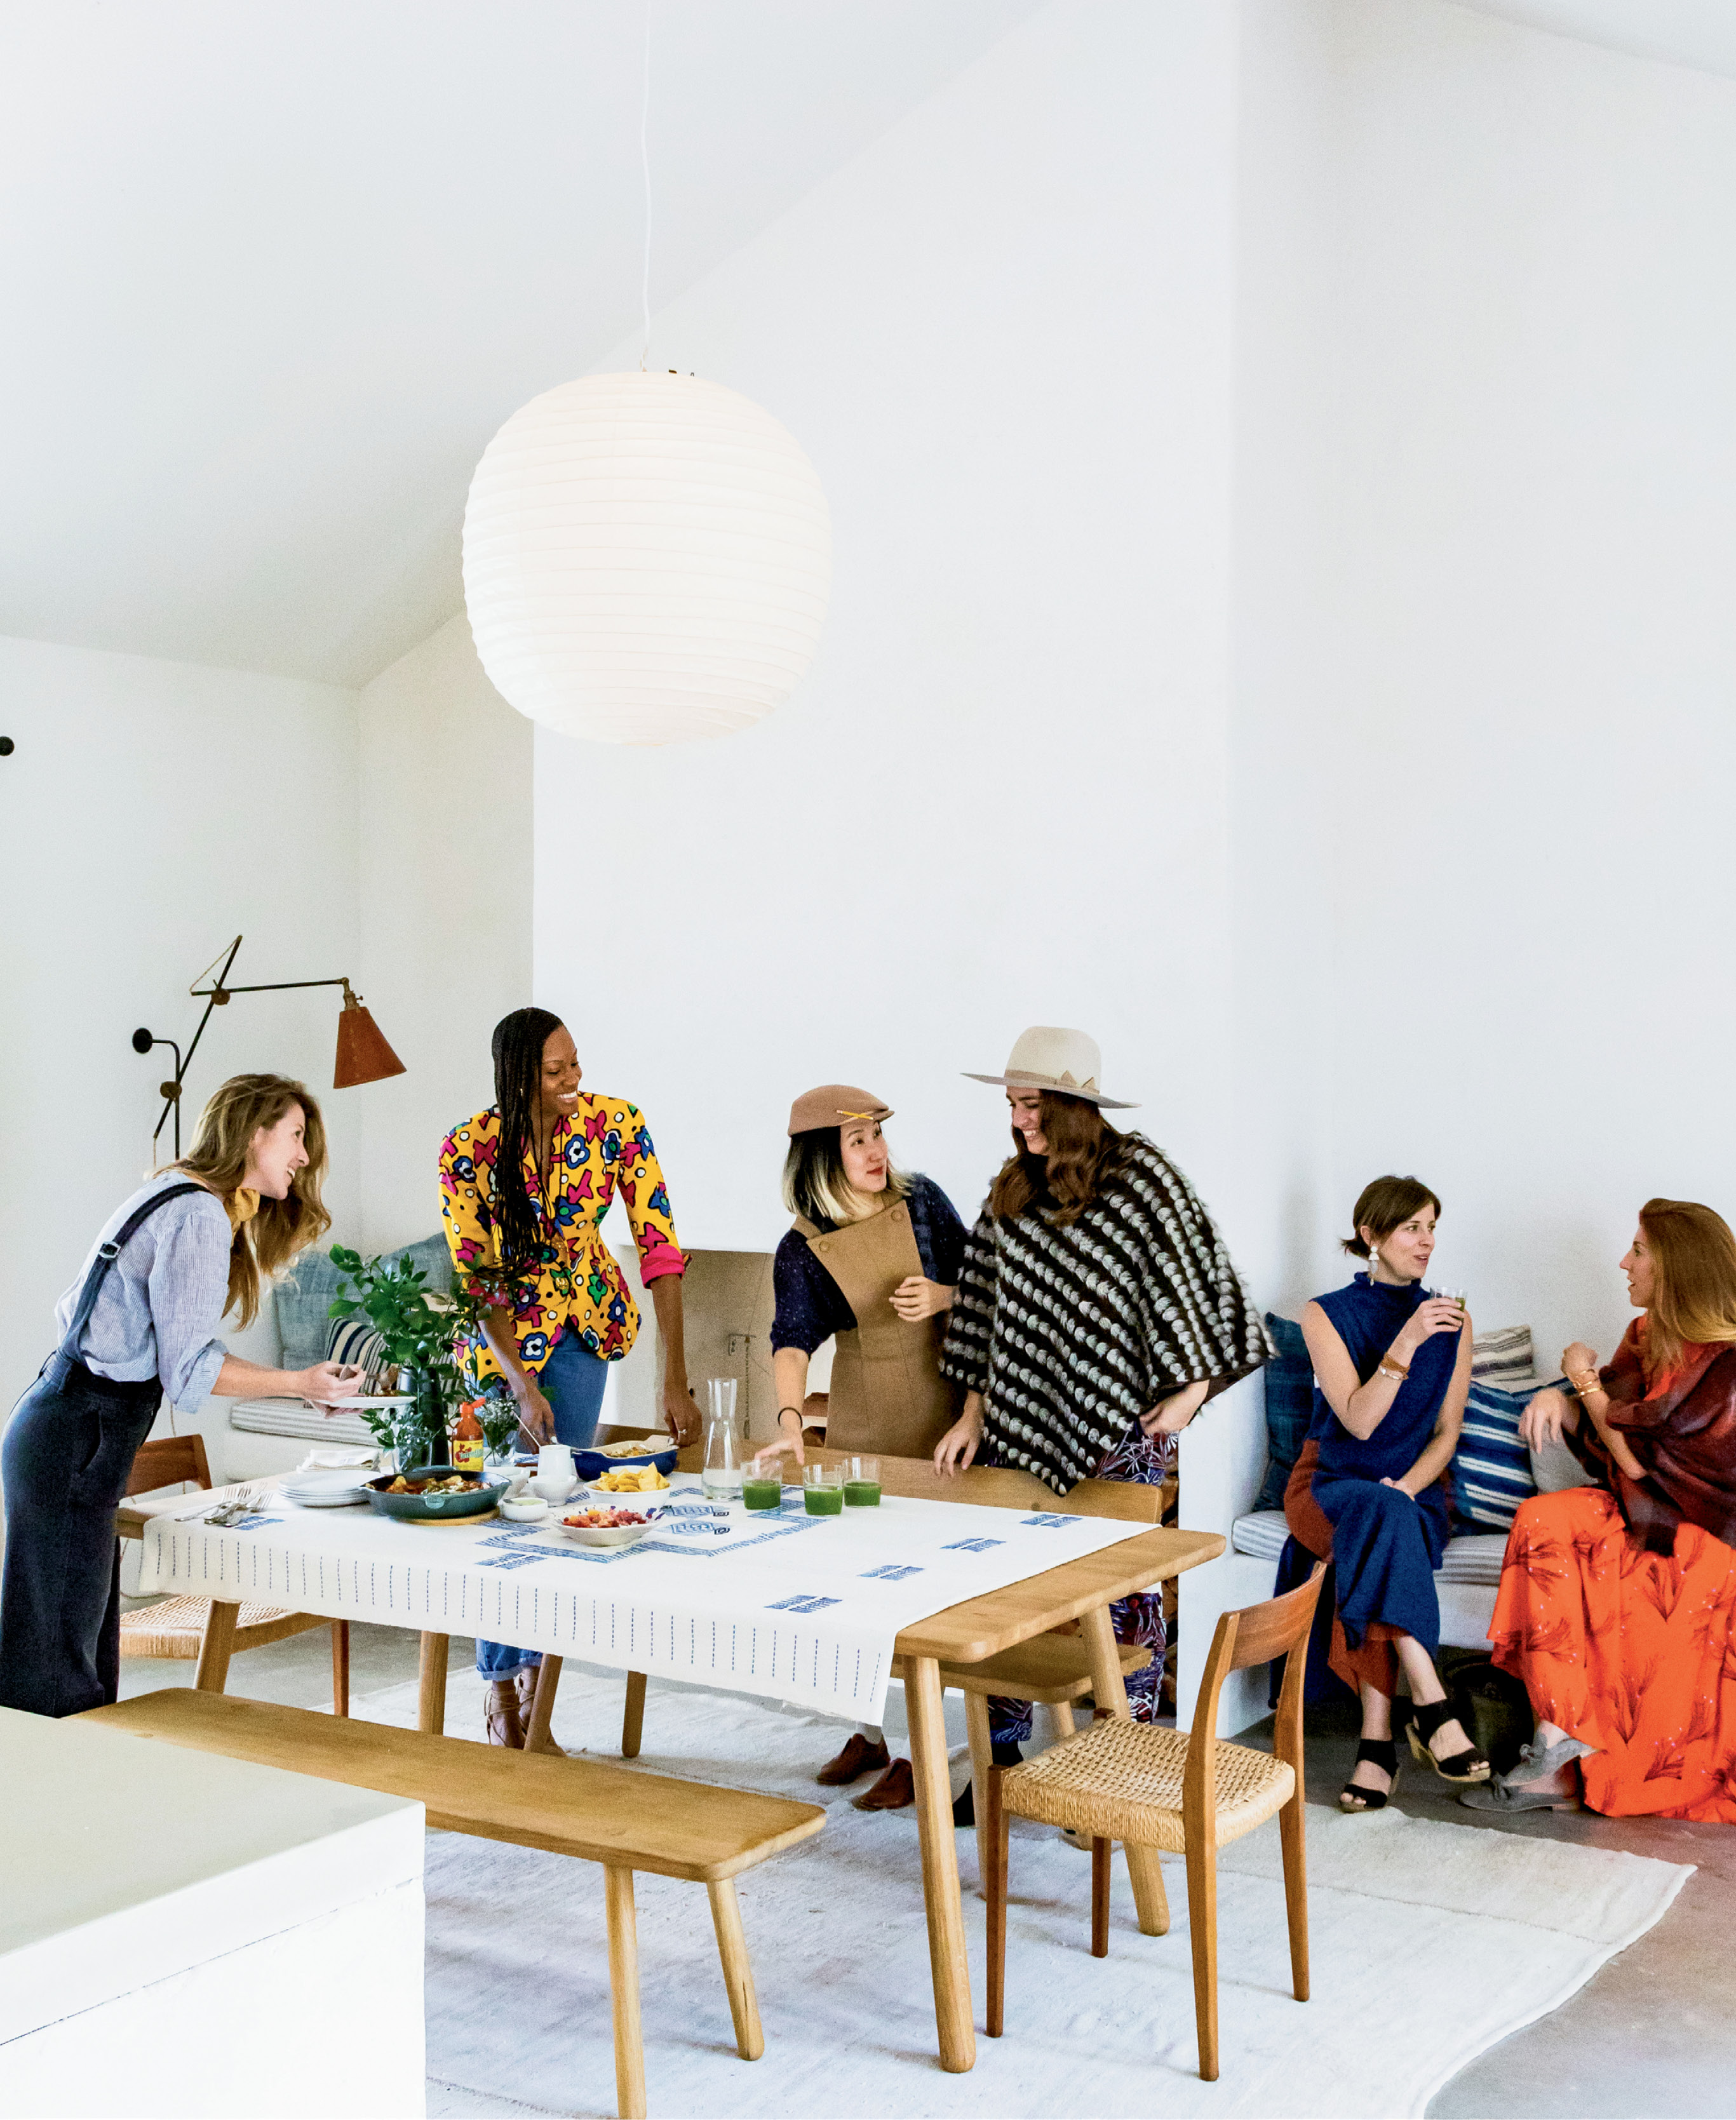 Jessica celebrates her local tribe—(from left to right) Melissa Sutton, Sabrina Hyman, Duolan Li (co-owner of Xiao Bao Biscuit and Tu), Harper Poe, and Ami Murphy—with a healthy brunch at the Sullivan's Island home of Melinda Wood (not pictured).